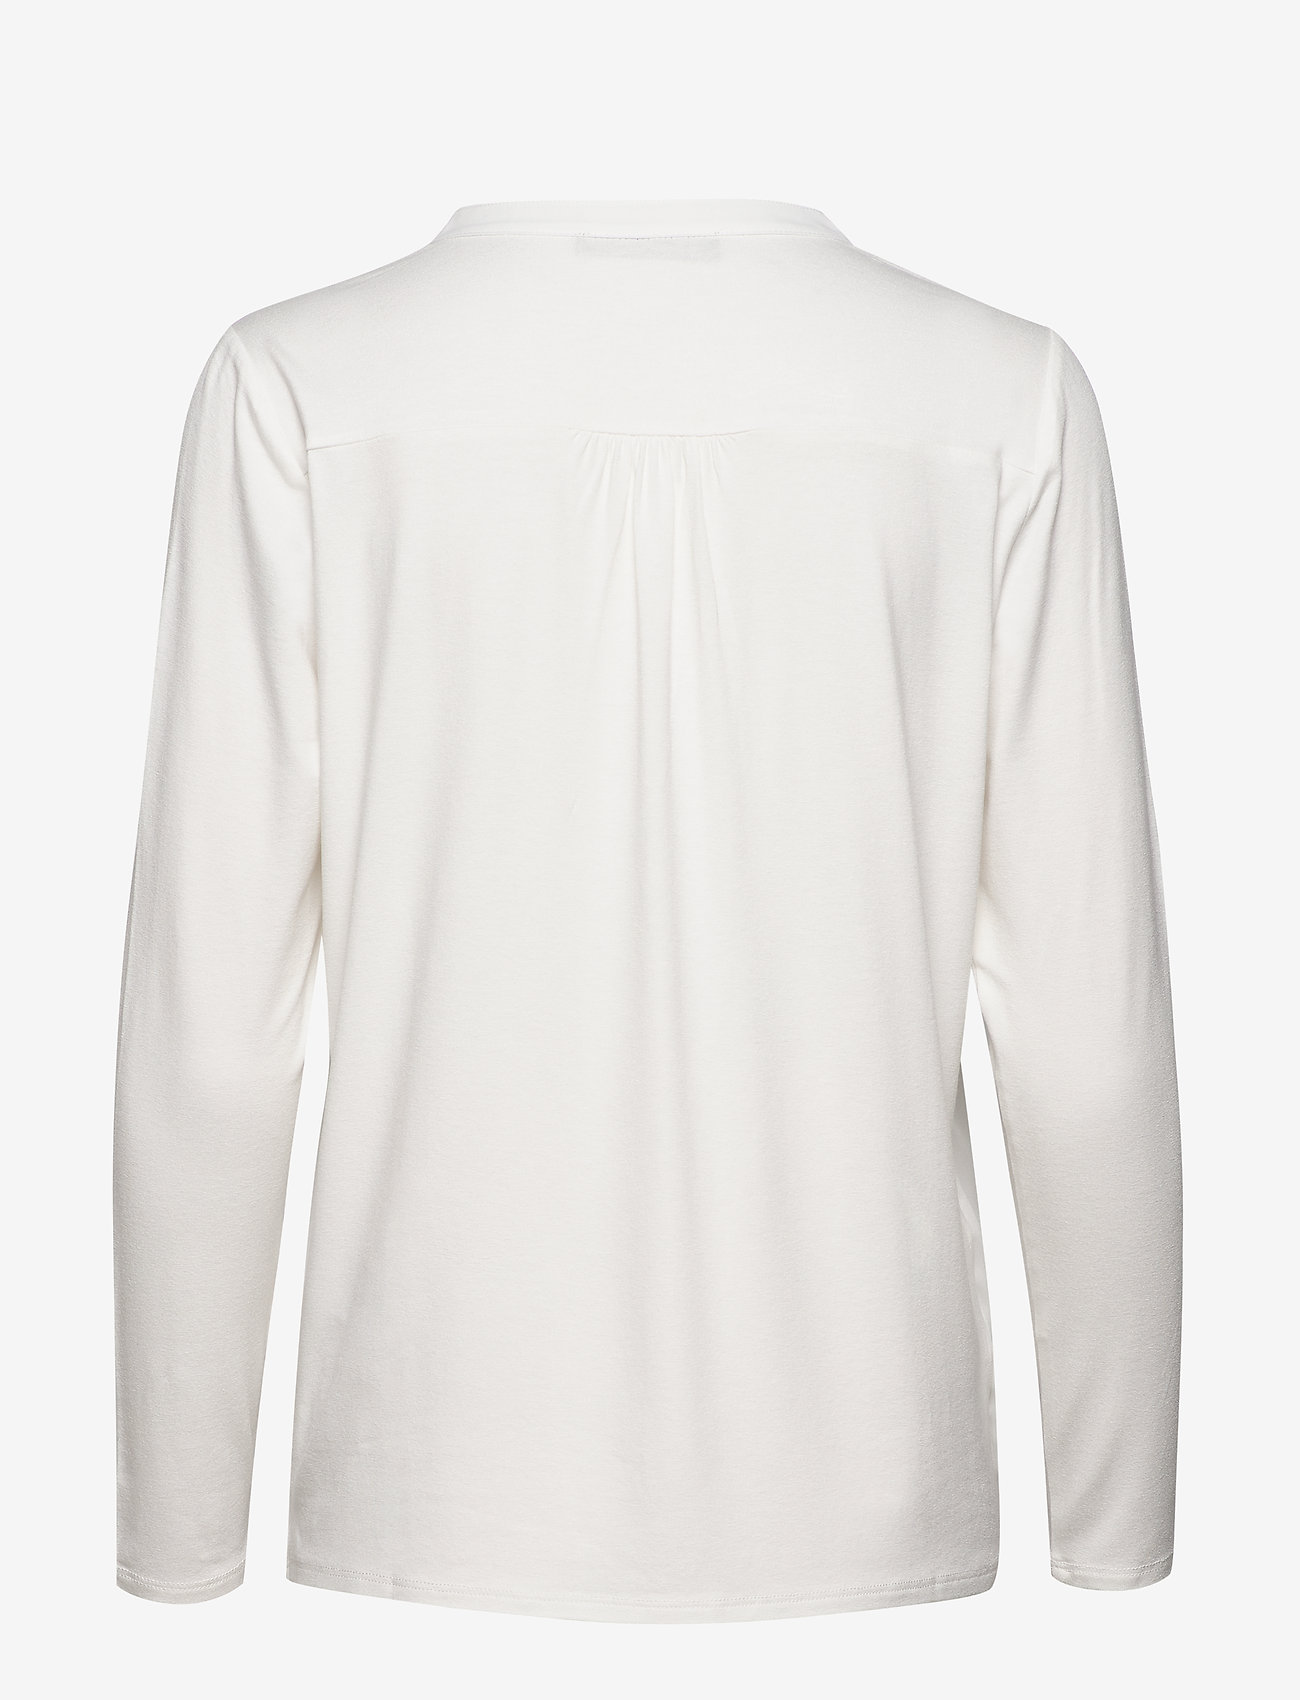 Shirt Long 1/1 Sleeve (Offwhite) - Betty Barclay Mvx0X9